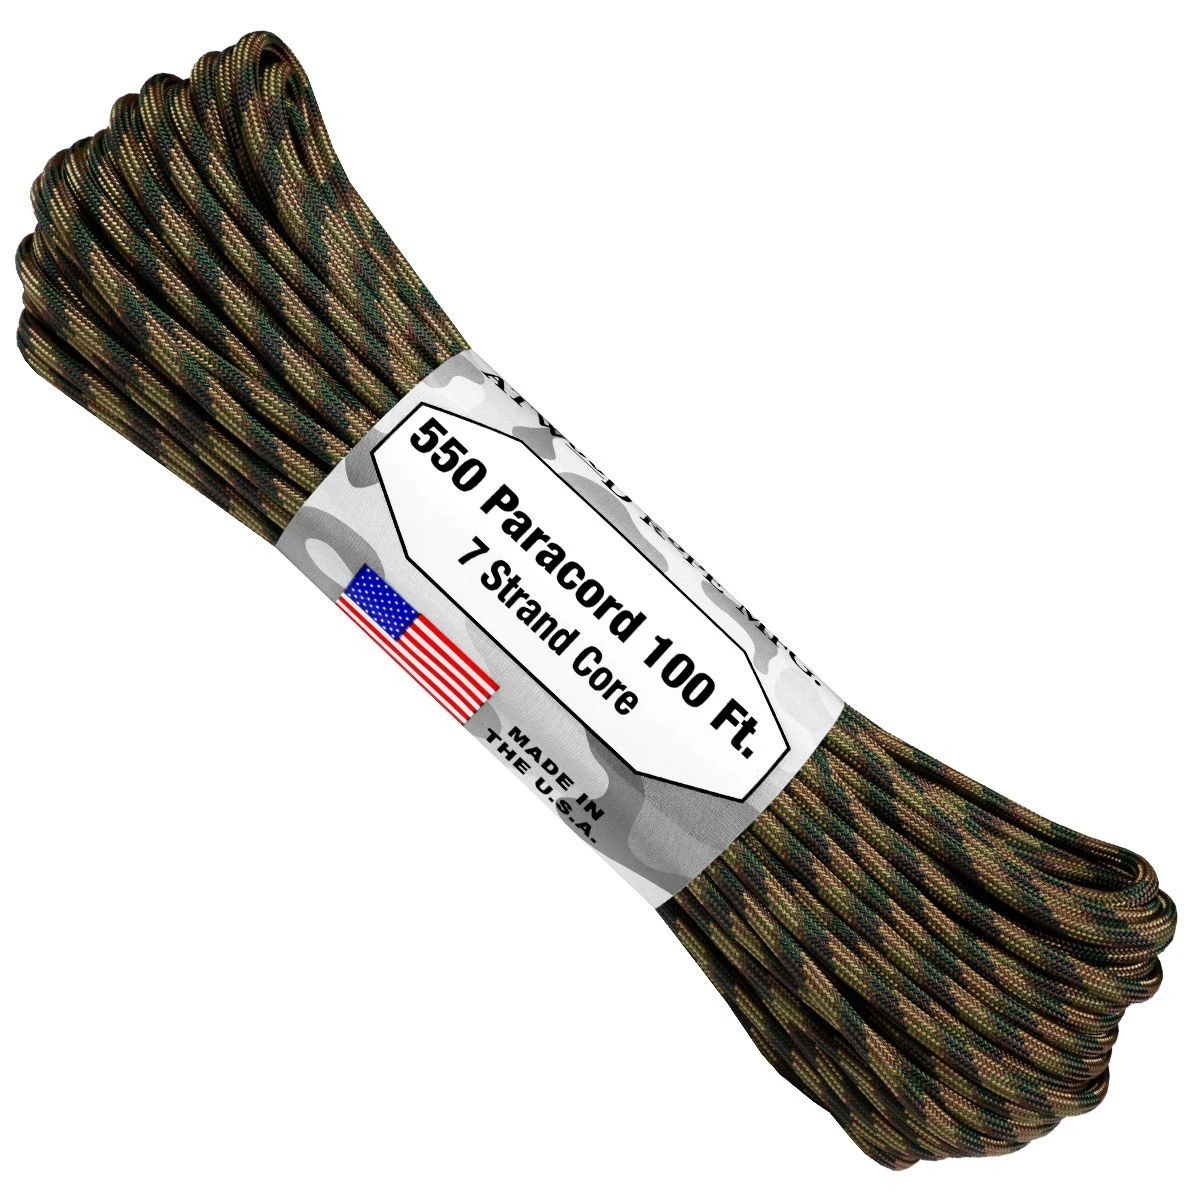 550 Paracord - 100ft - Recon - Made in USA